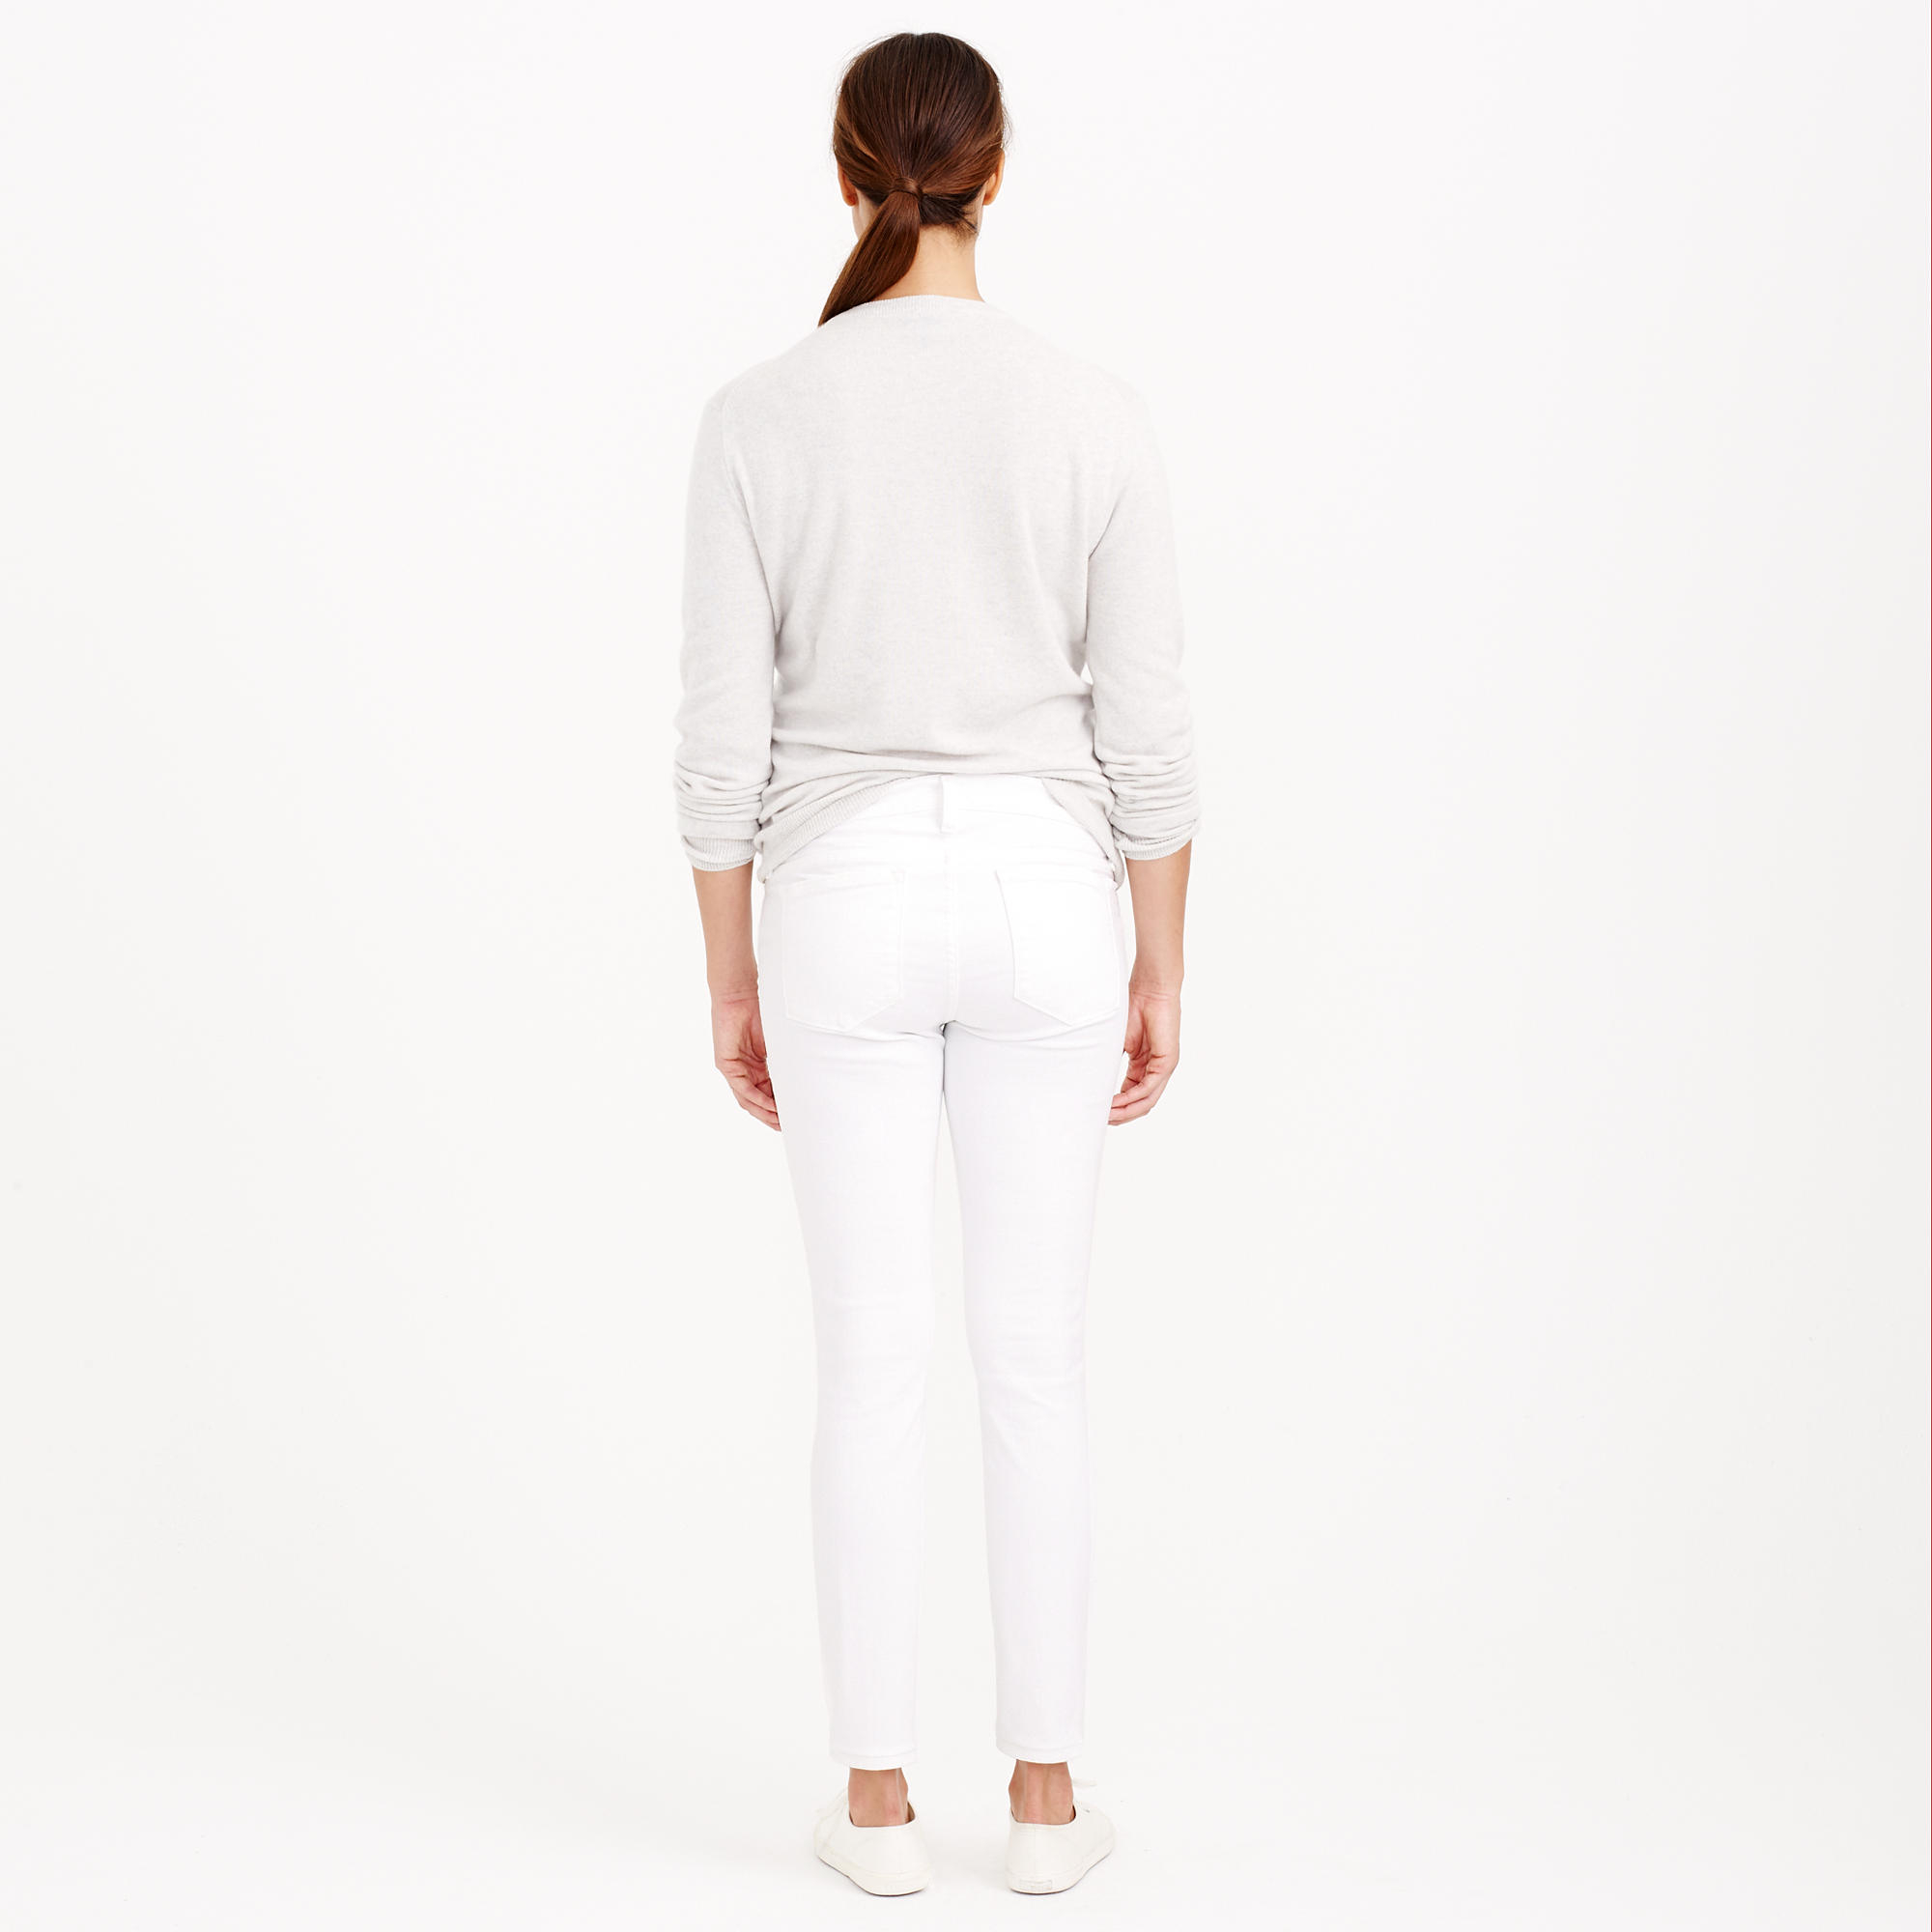 c775ffc3044a1 J.Crew Tall Stretch Maternity Toothpick Jean In Chalk in White - Lyst